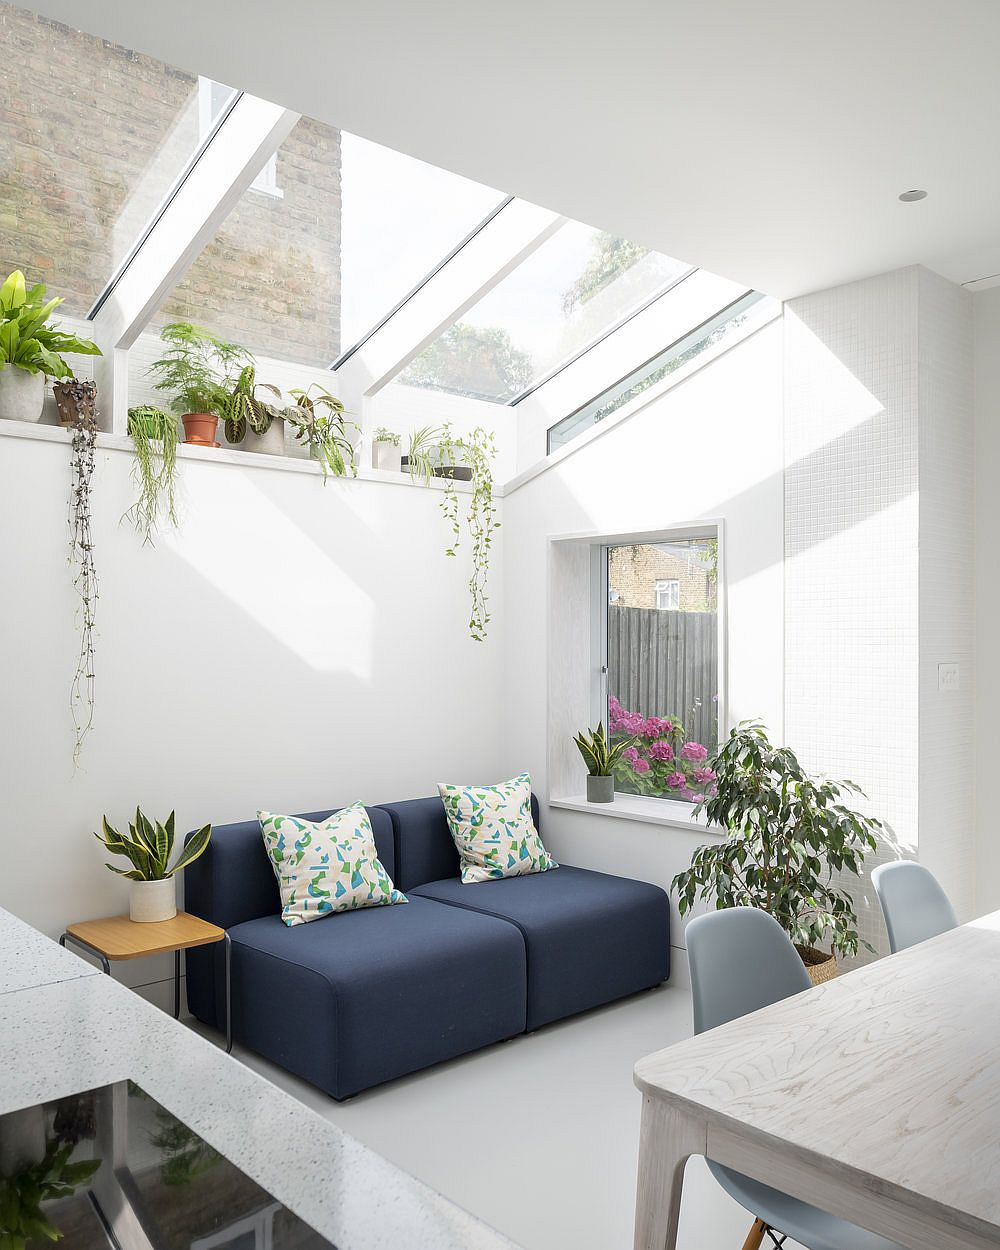 Glazed roof brings light into the new white extension to the classic Victorian terrace house